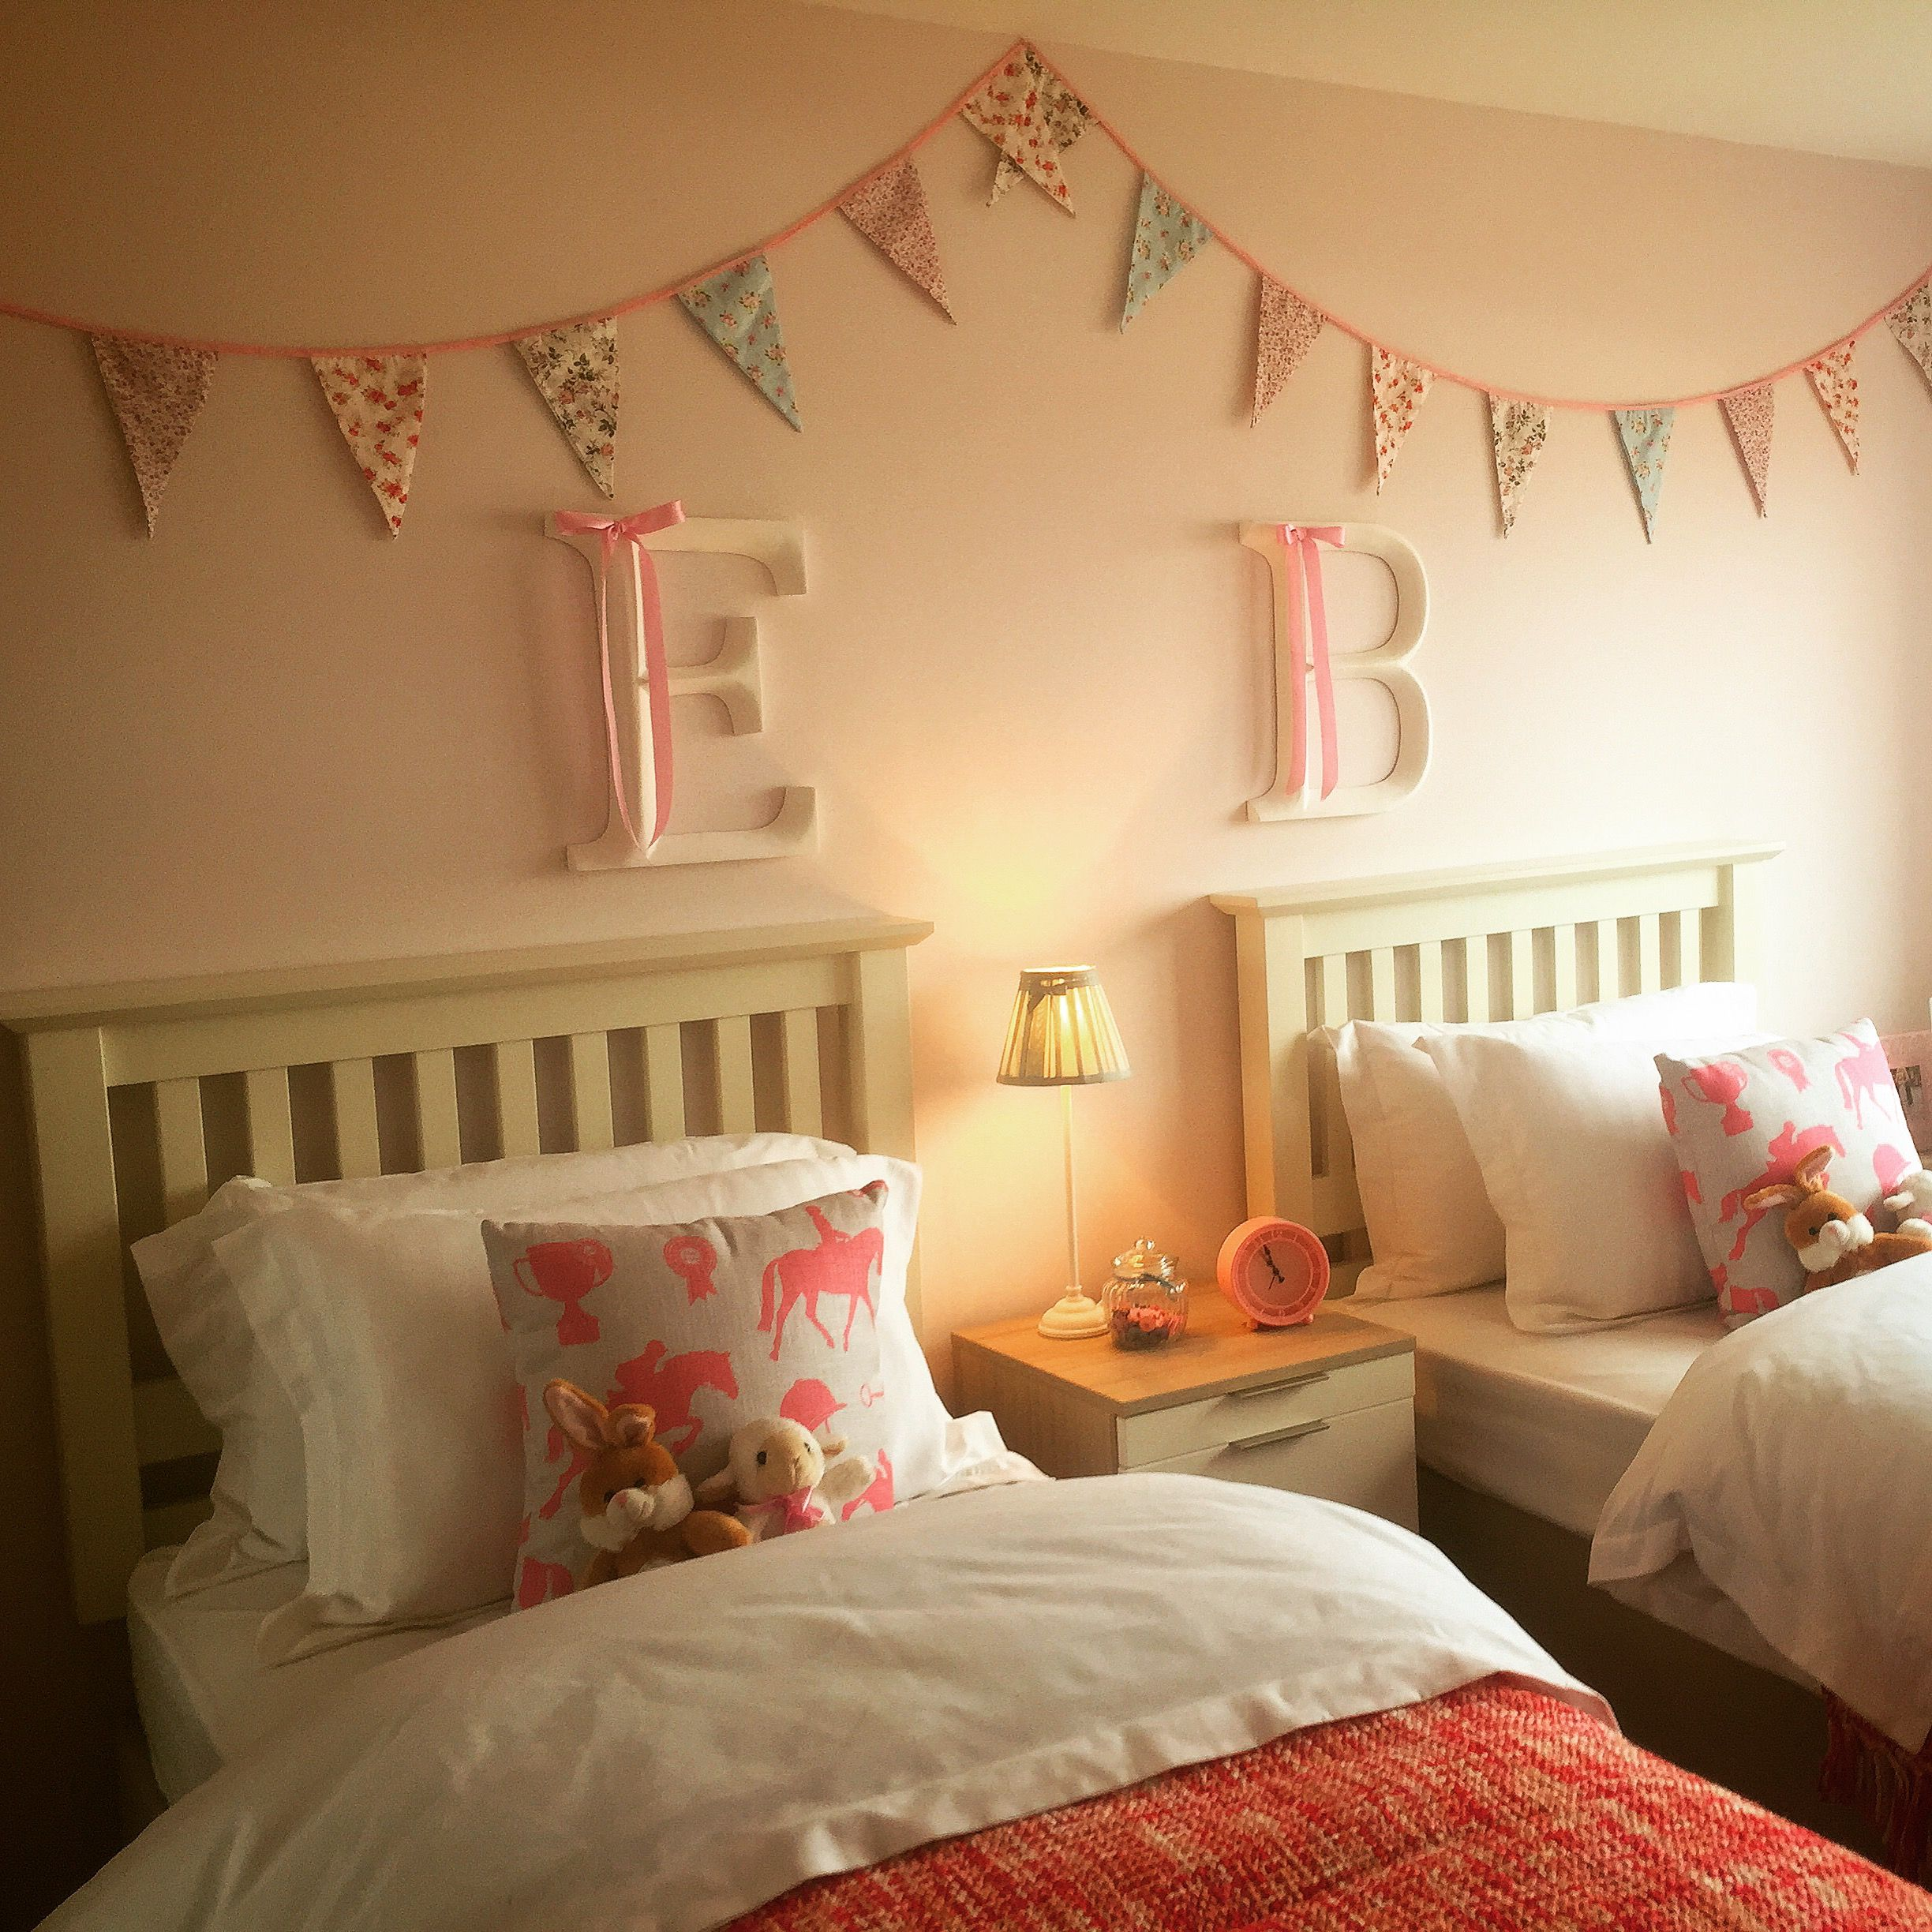 Dorm Room Ideas For Girls Decorations Color Schemes